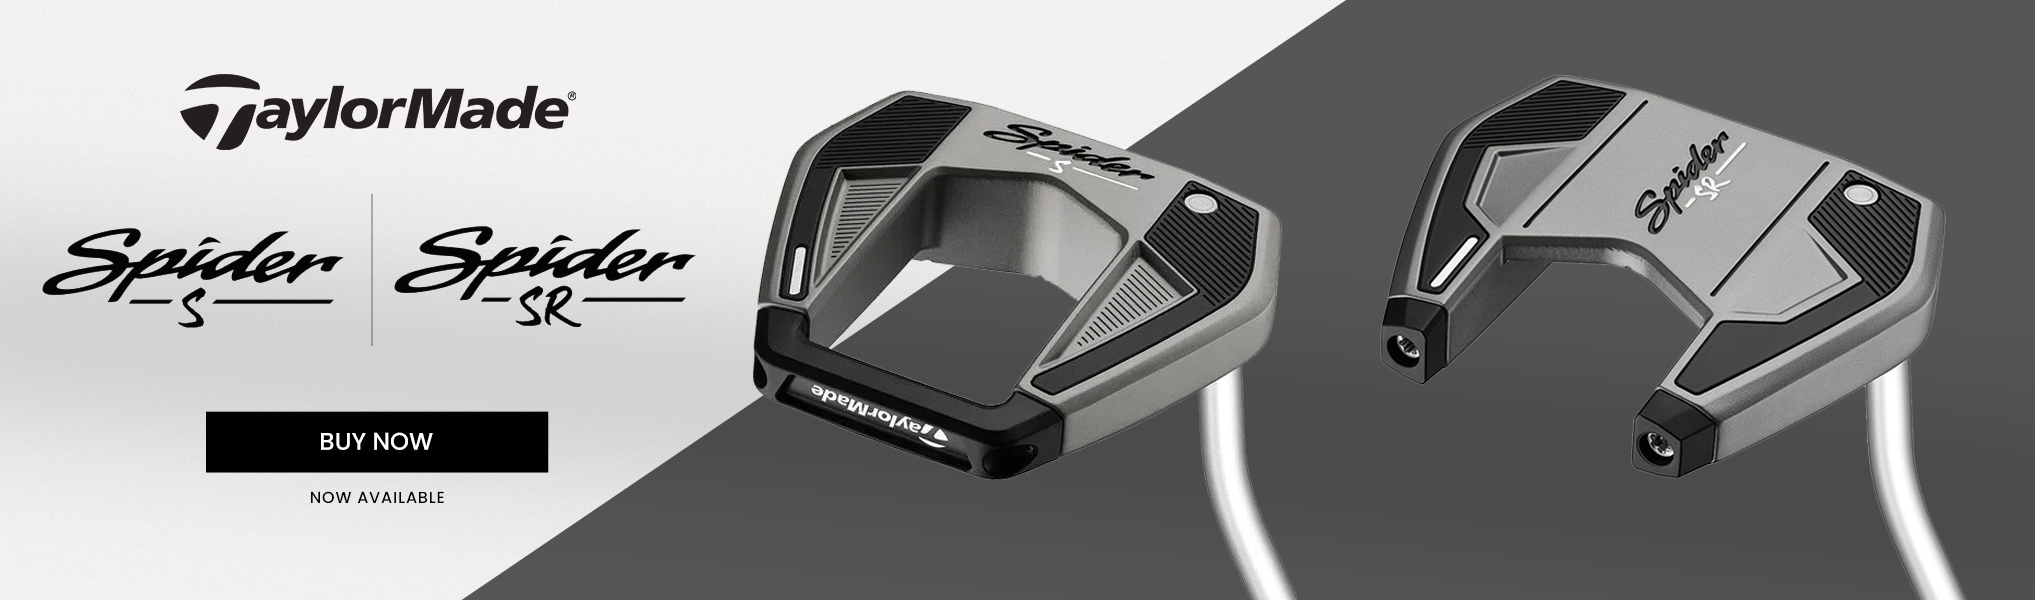 Taylormade spider s and spider sr putters. Buy now. Now available.